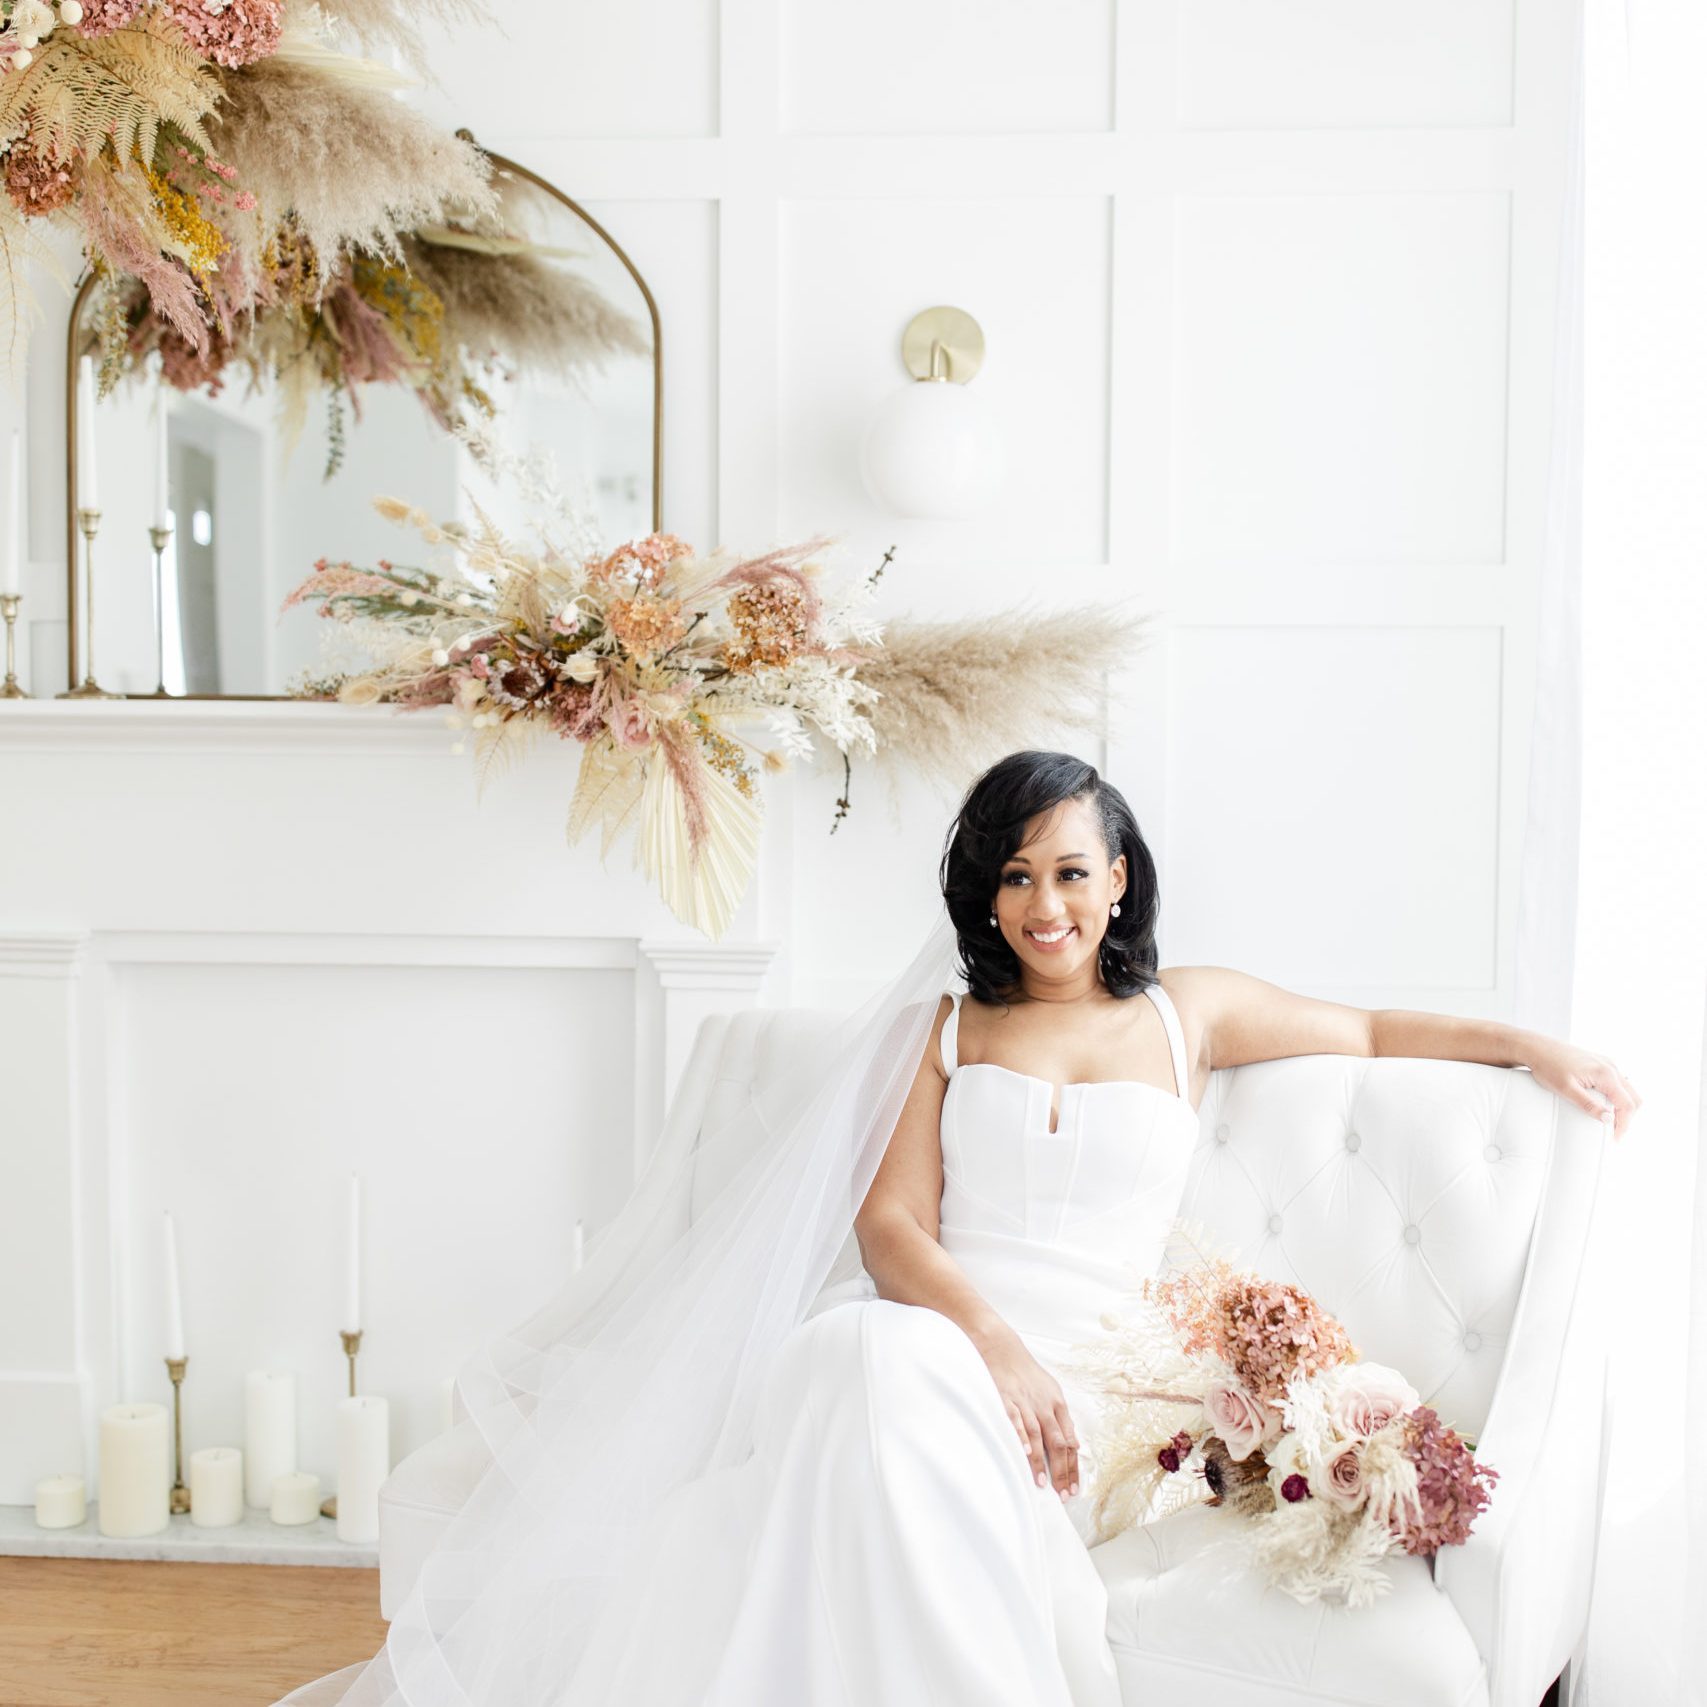 Bridal portraits in bright and airy luxury photography studio in Maple Grove, MN